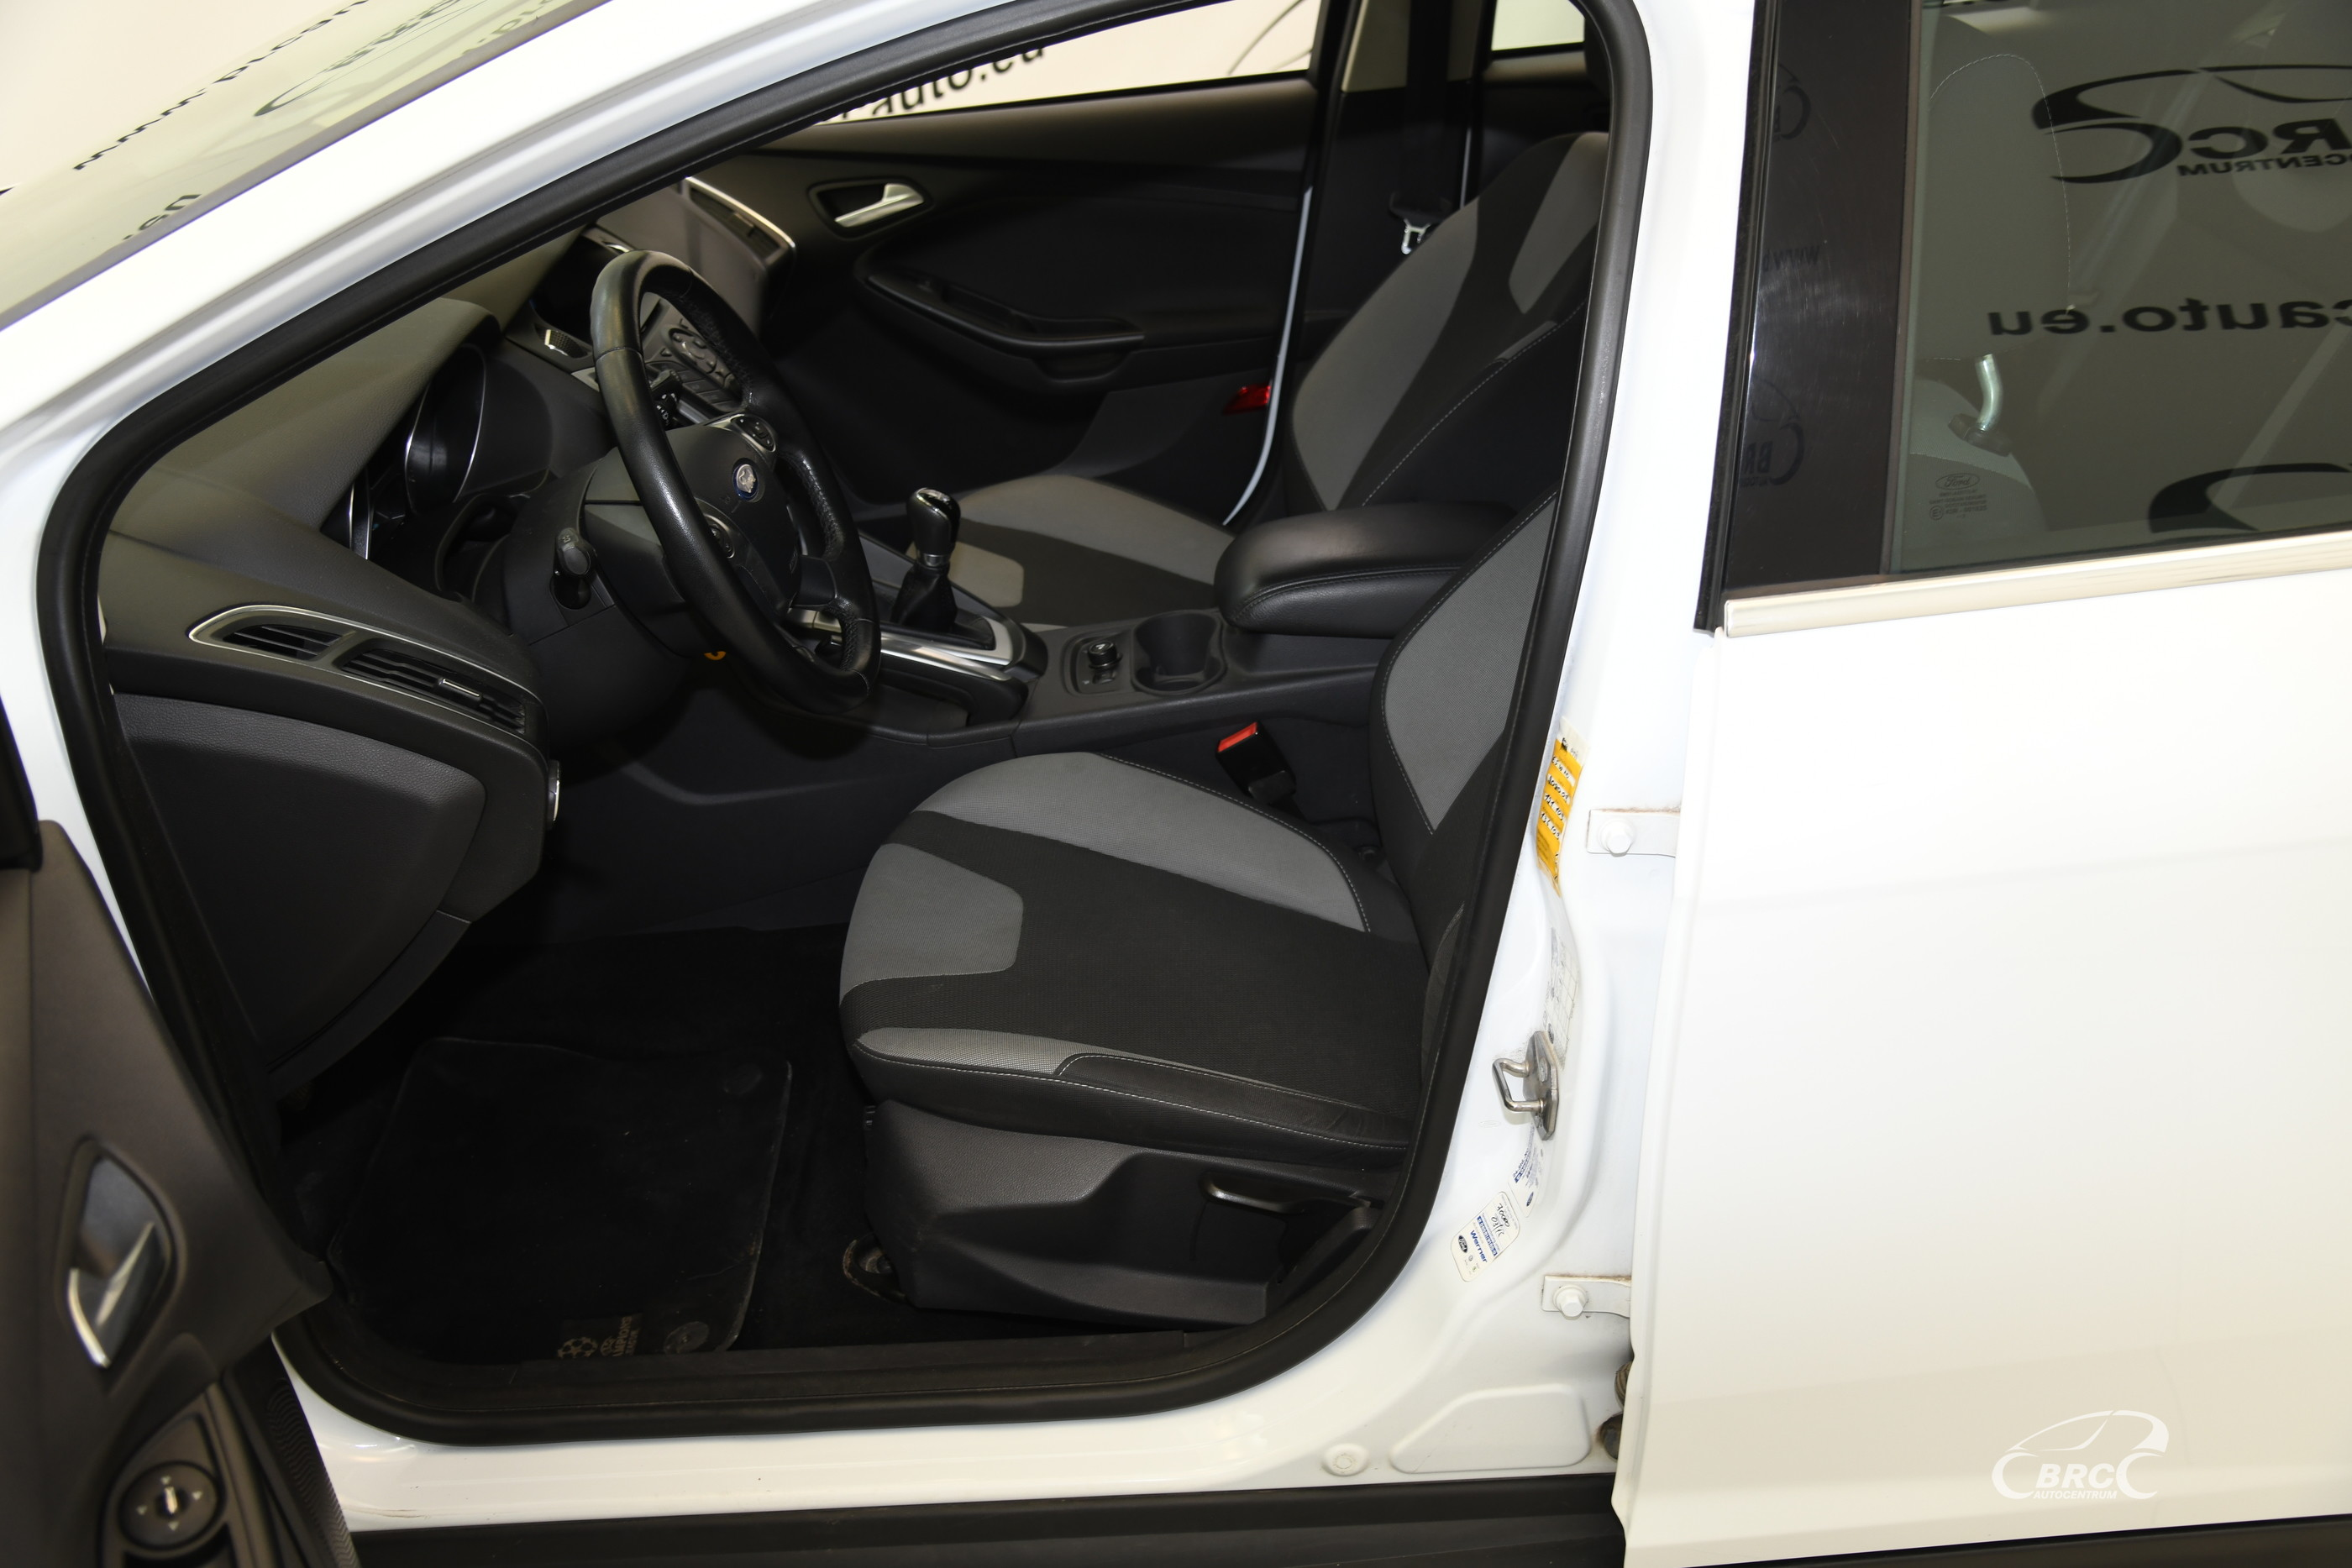 Ford Focus 1.0i Econetic Technology